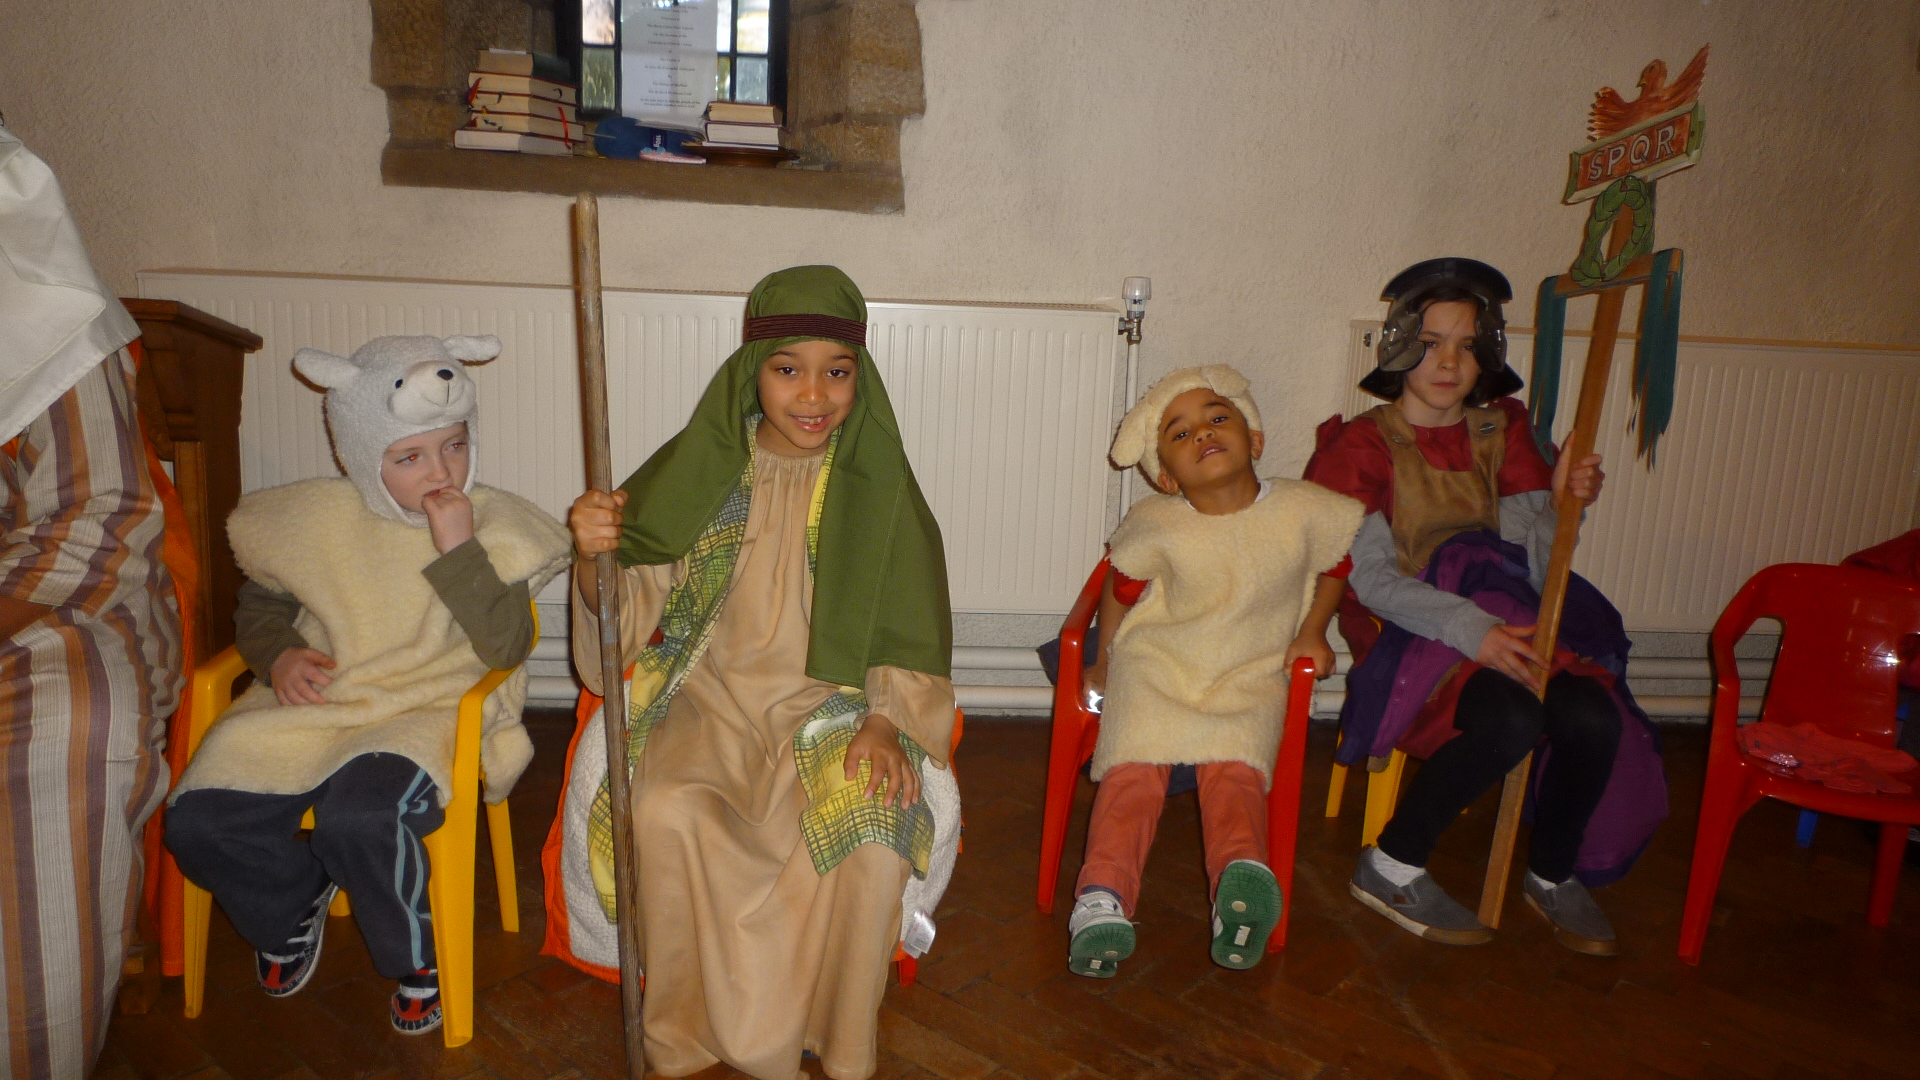 Costumes for the Nativity